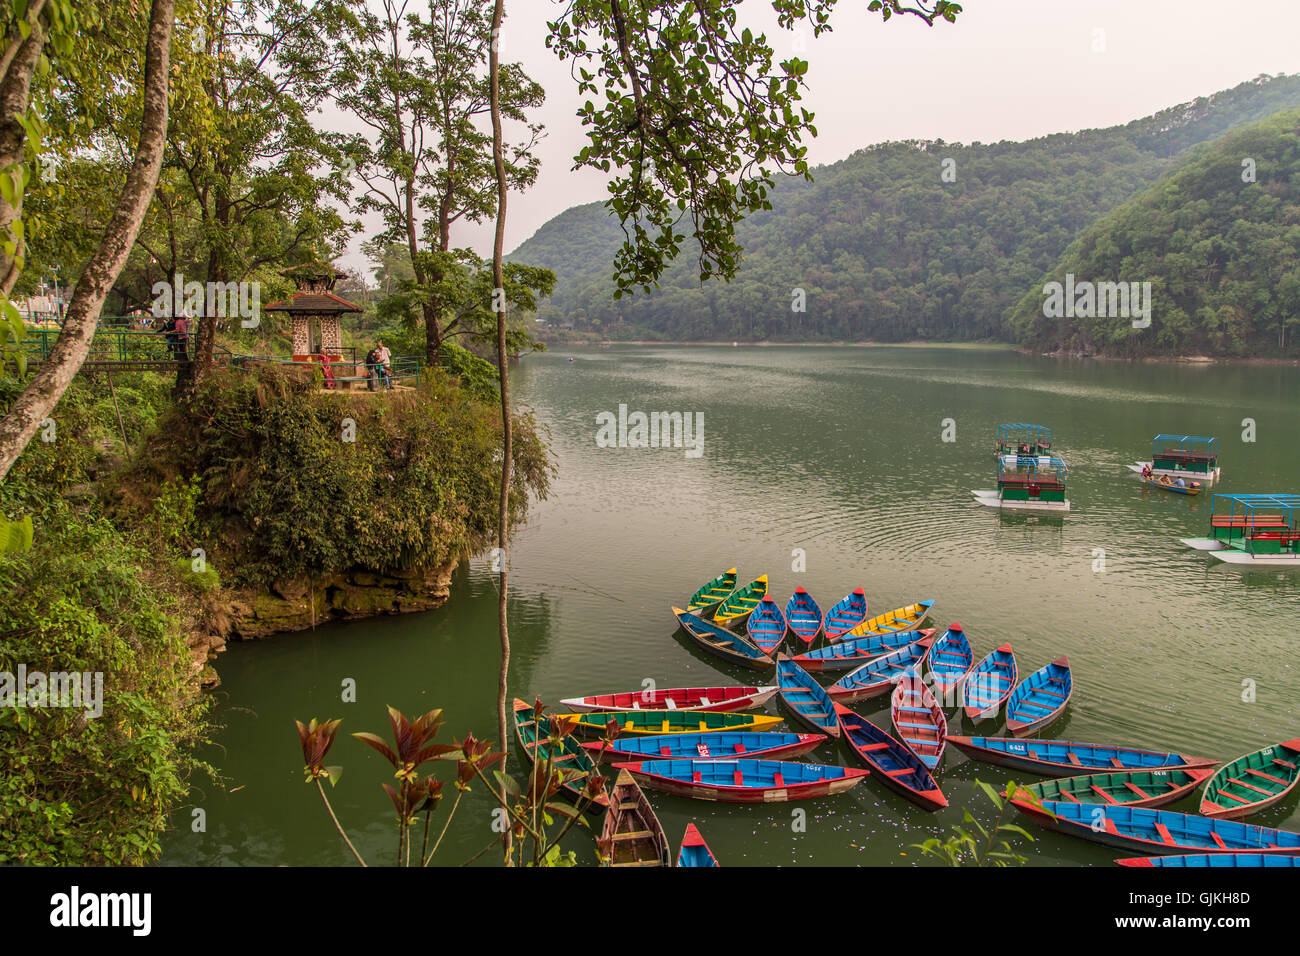 Colorful Rafts and Boats in Pokhara, Nepal - Stock Image